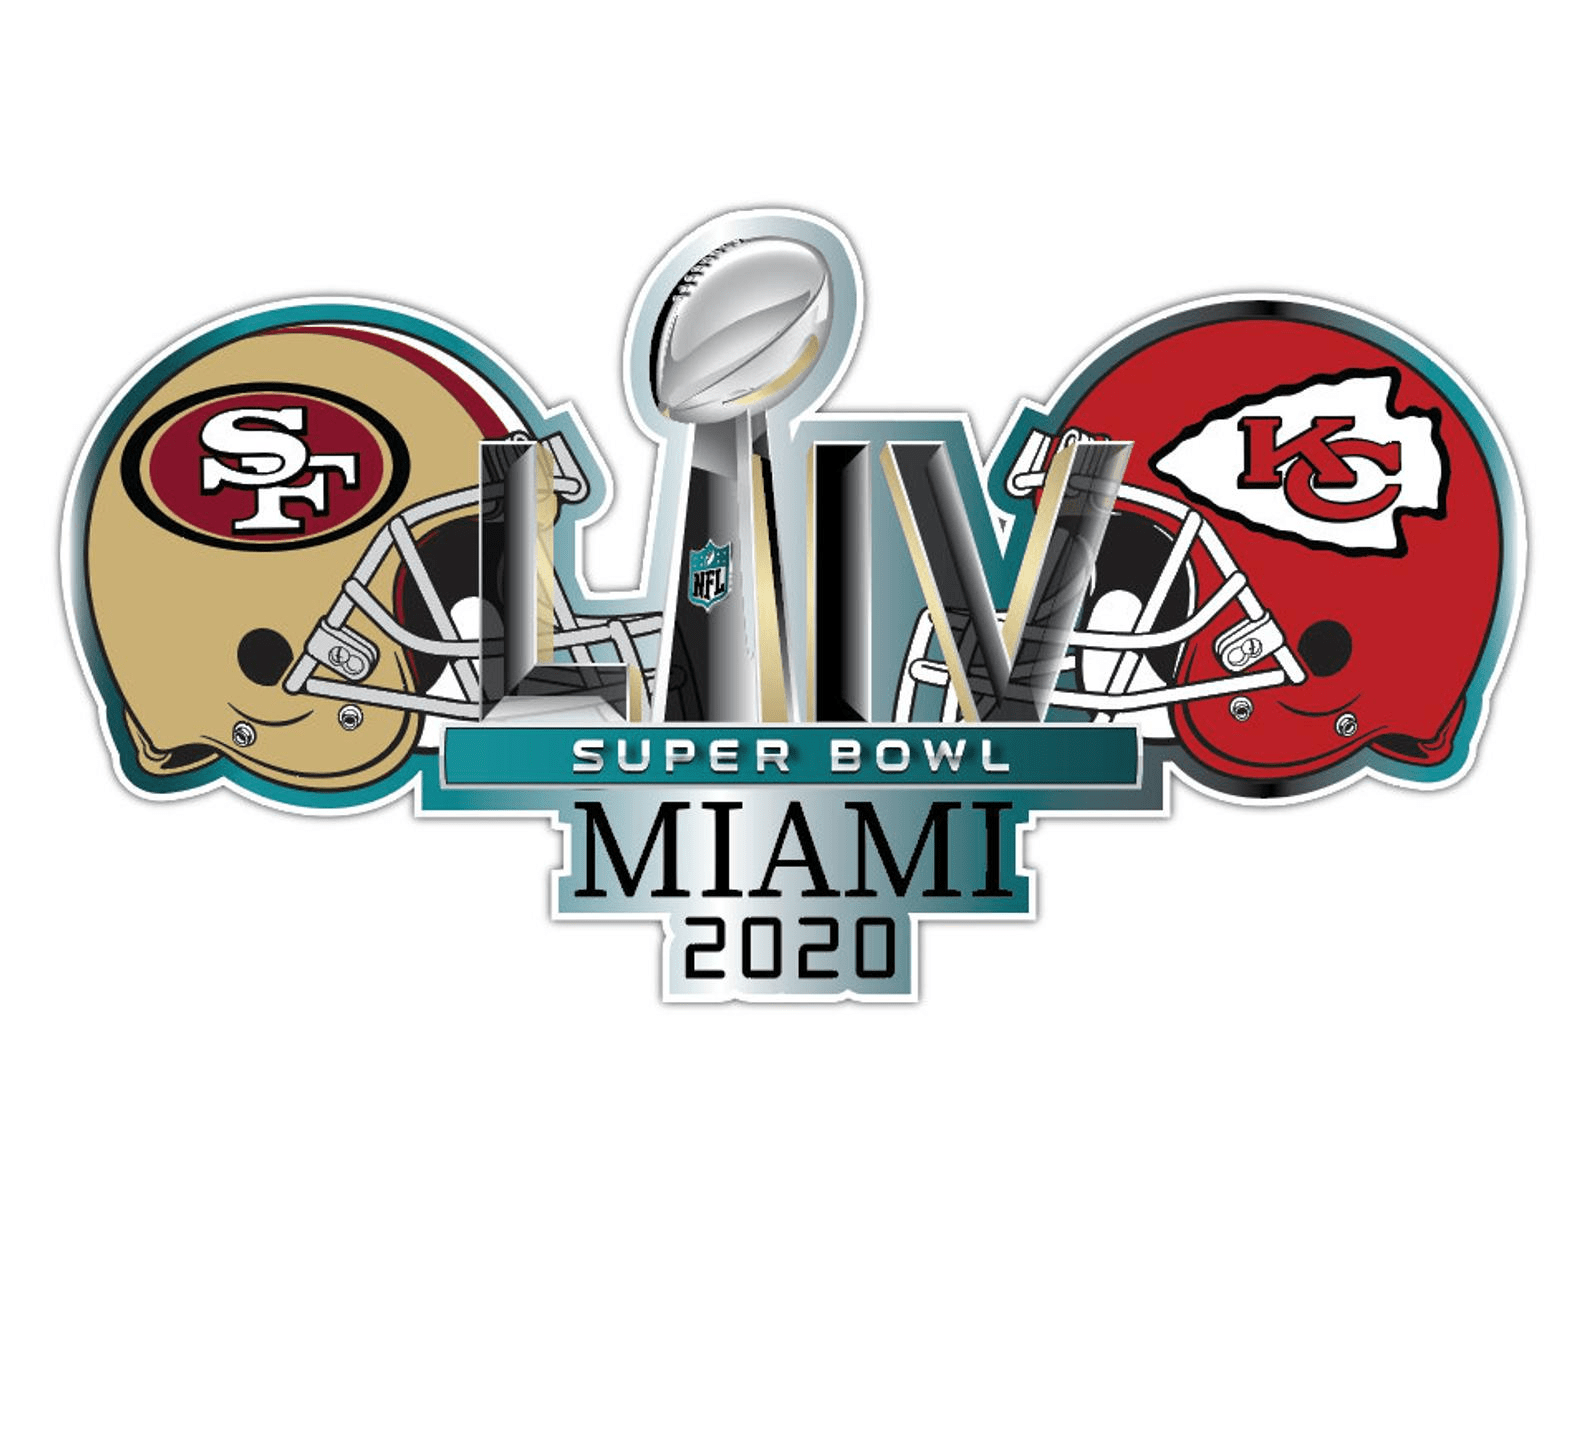 Table Tennis Logic – The 49ers / Chiefs Superbowl